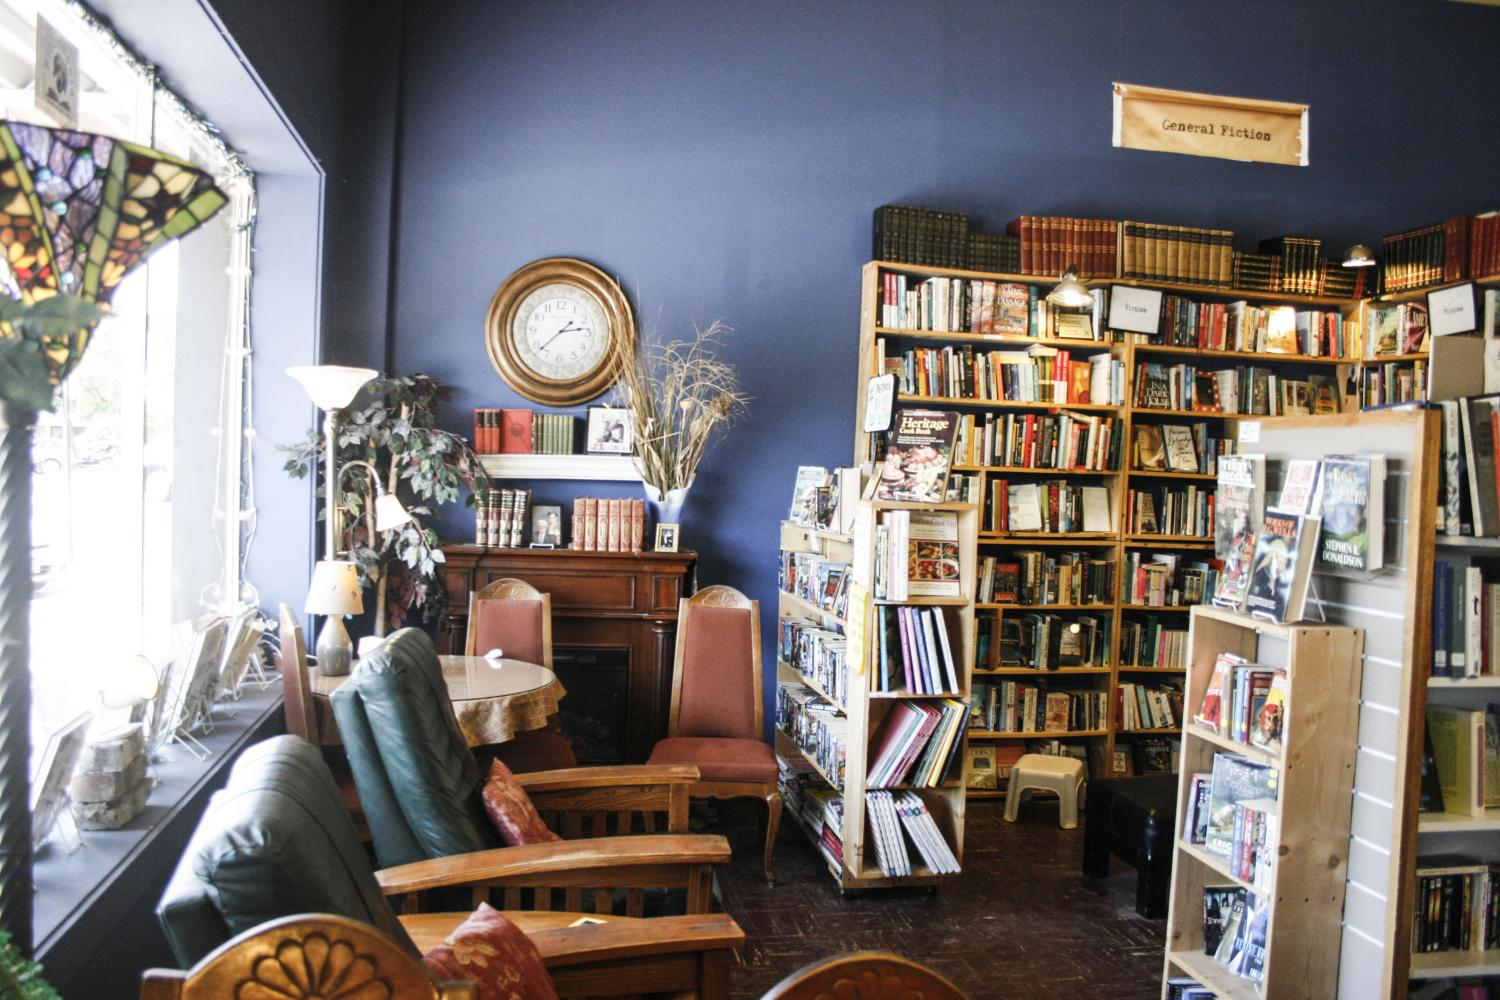 Bailey's Bibliomania's well-known sign features owner John Varner's beagle, Bailey. The relaxing space inside Bailey's has been a mainstay in Ellensburg for 11 years despite three previous moves to different locations.